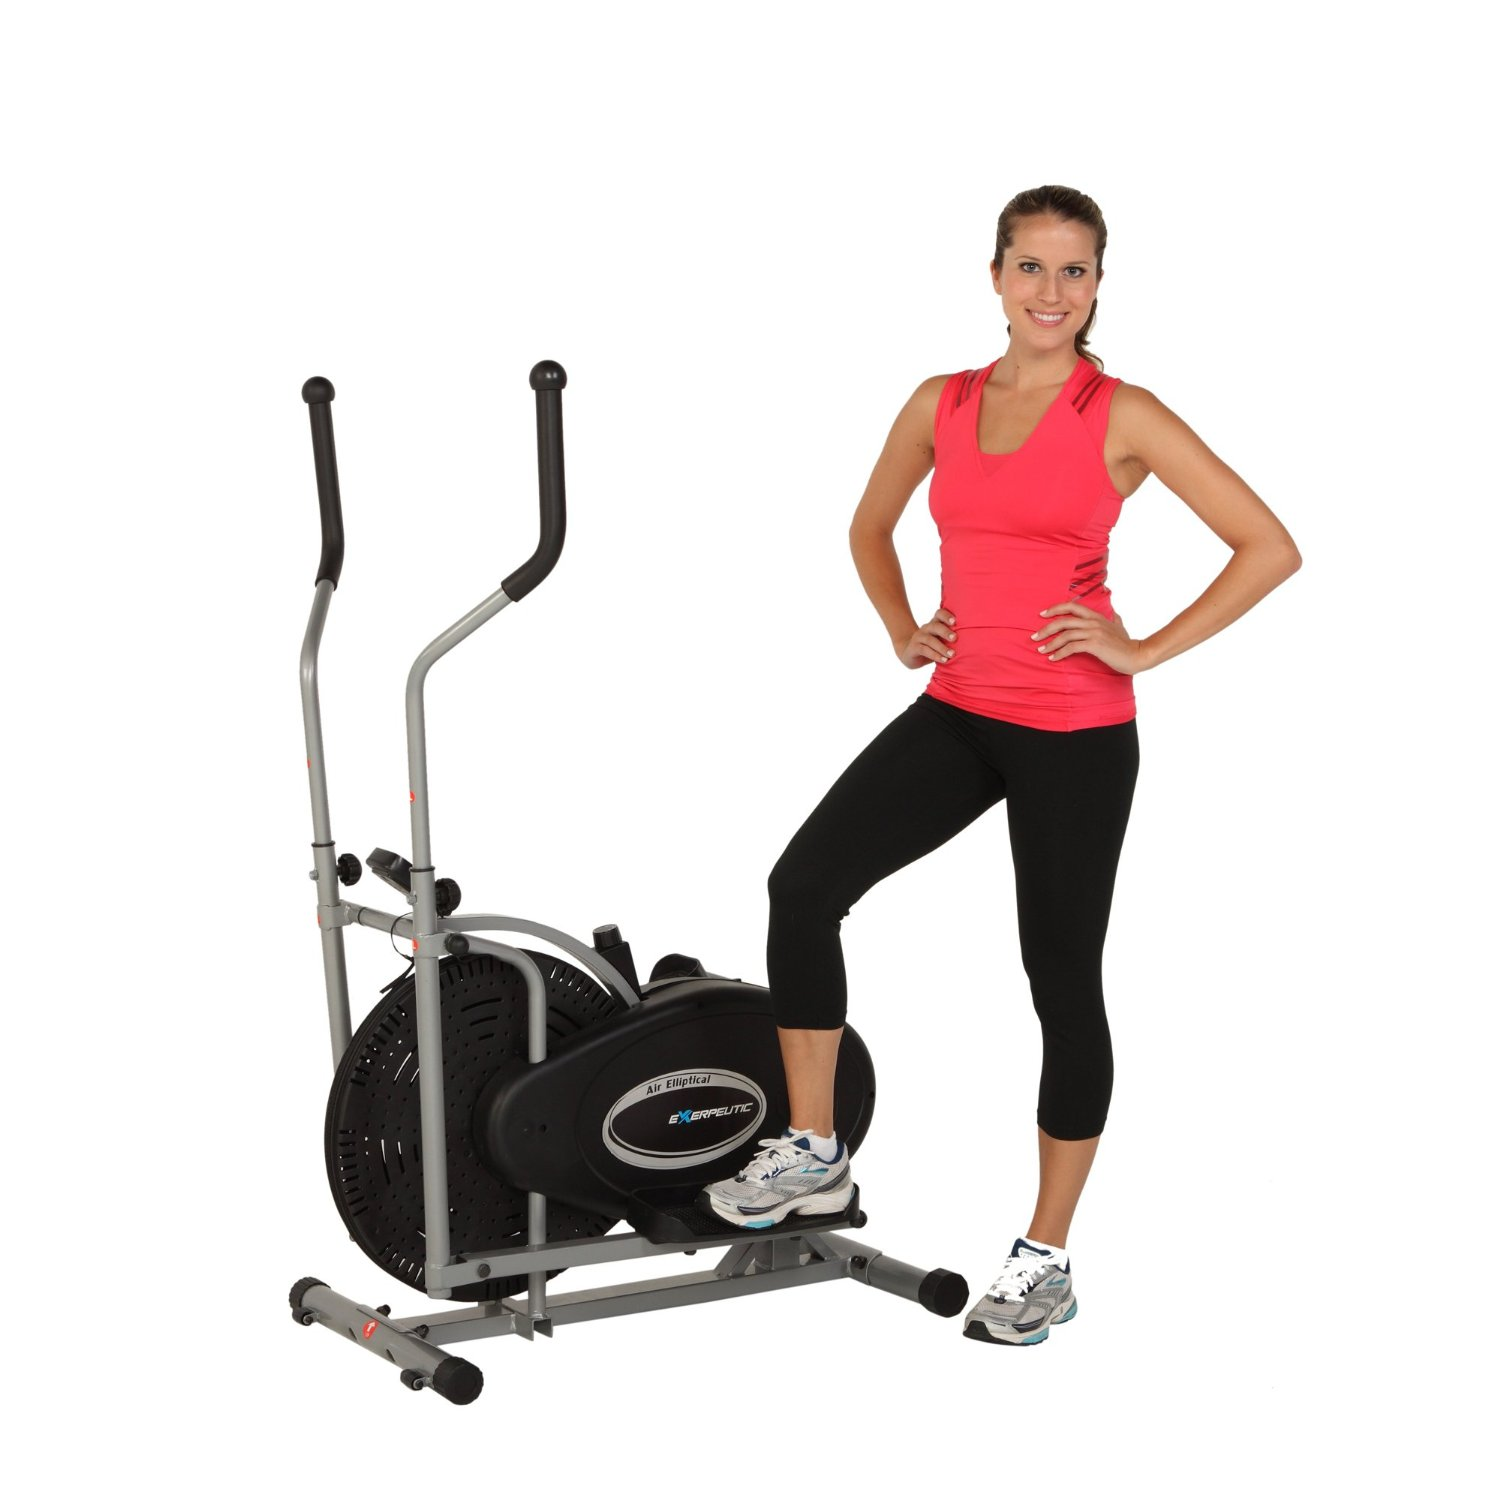 Best  Small Footprint Elliptical Trainers - Small elliptical for home